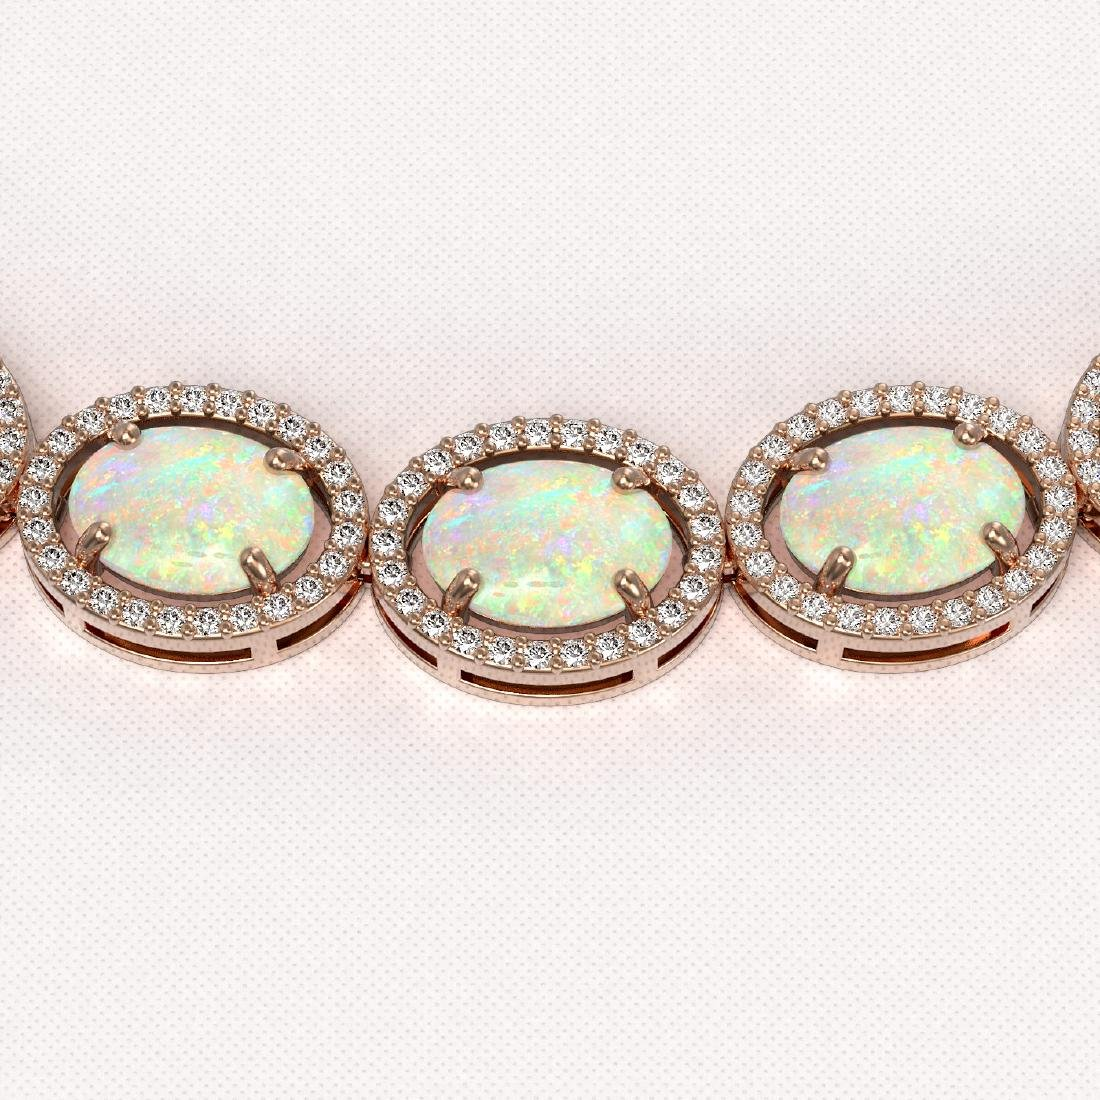 42.29 CTW Opal & Diamond Halo Necklace 10K Rose Gold - 3